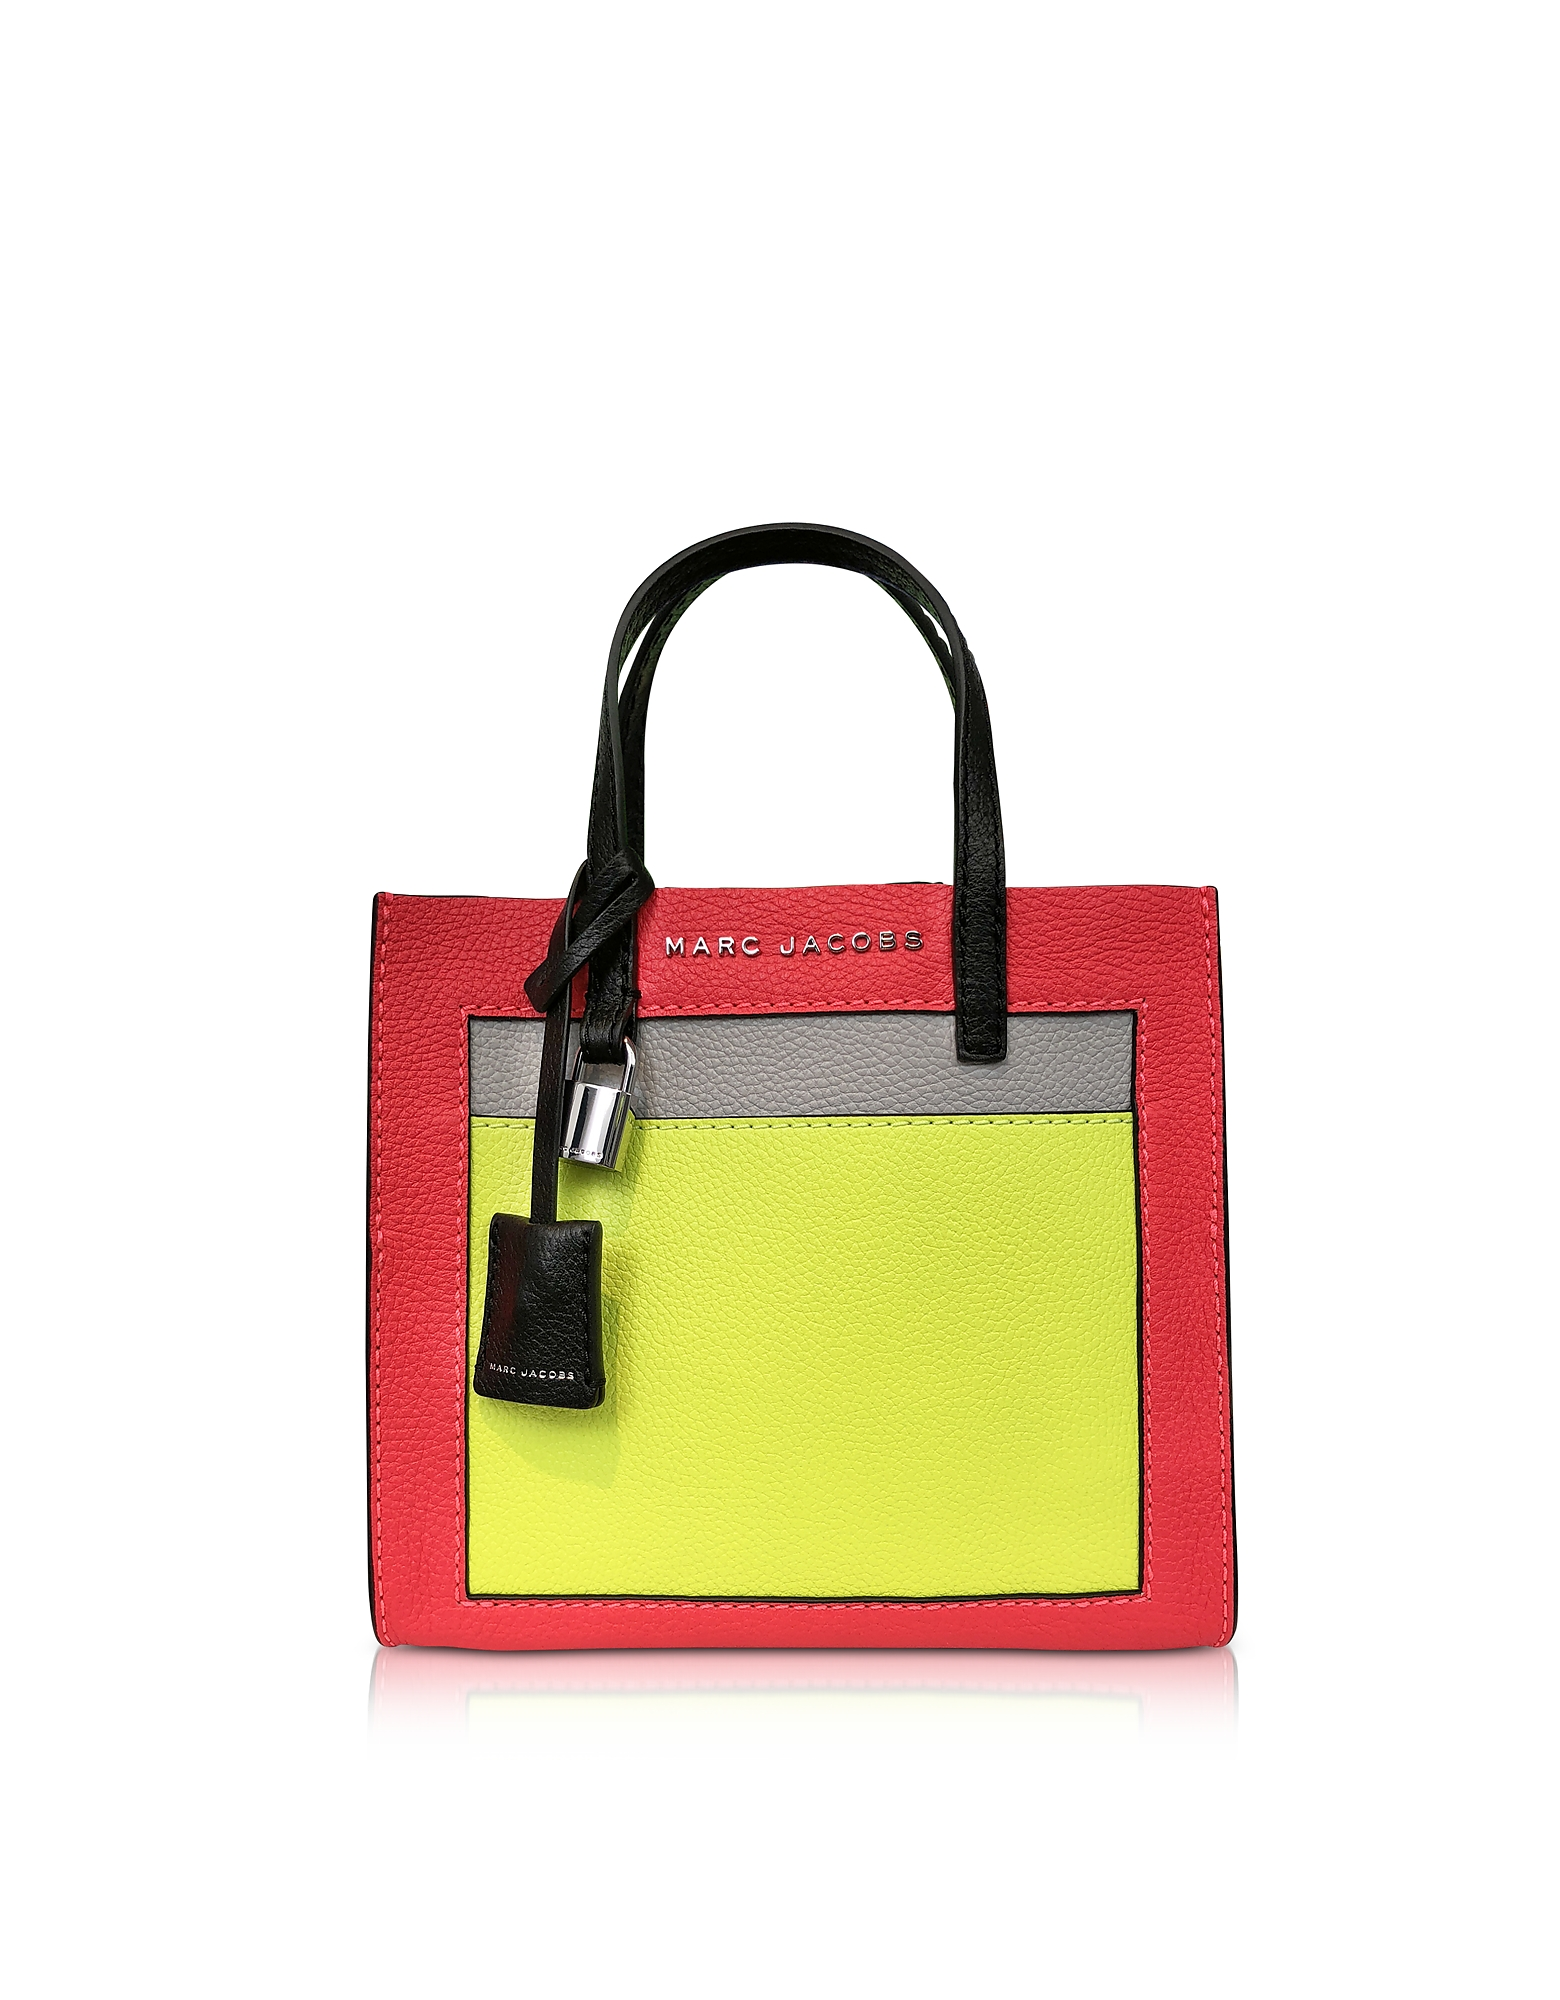 Grainy Leather The Mini Grind Colorblocked Tote Bag